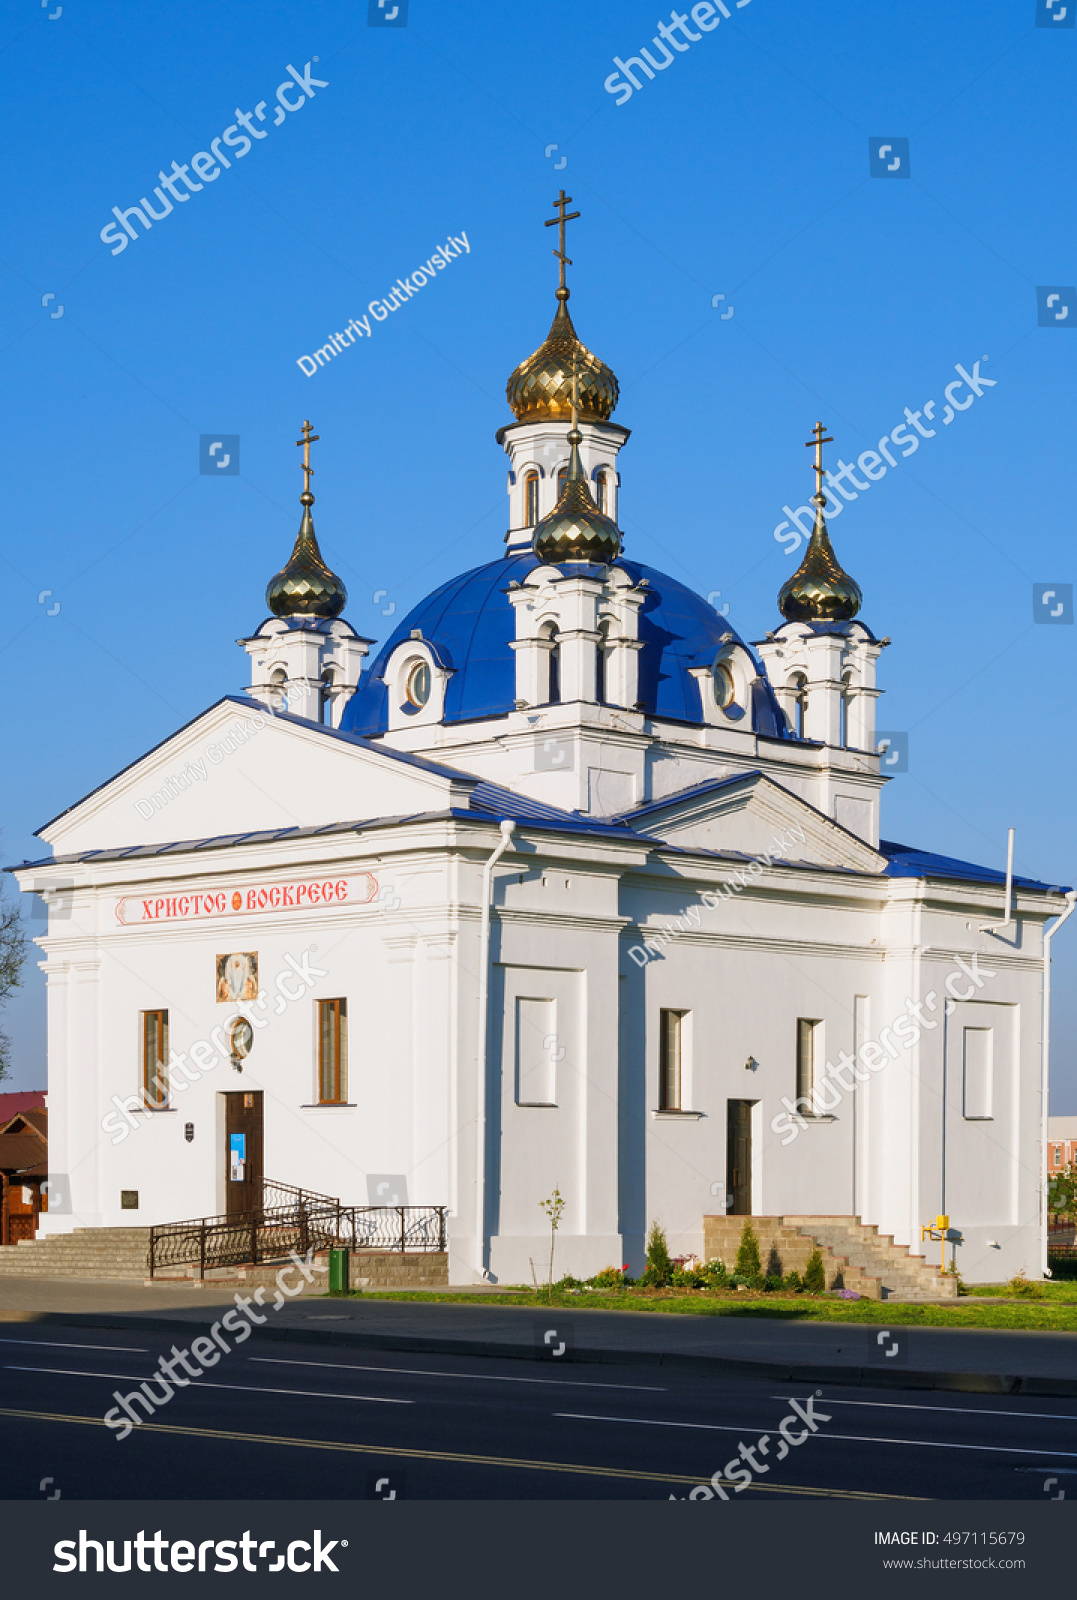 Orthodox Church With Easter Greetings Written On Its Front In Orsha